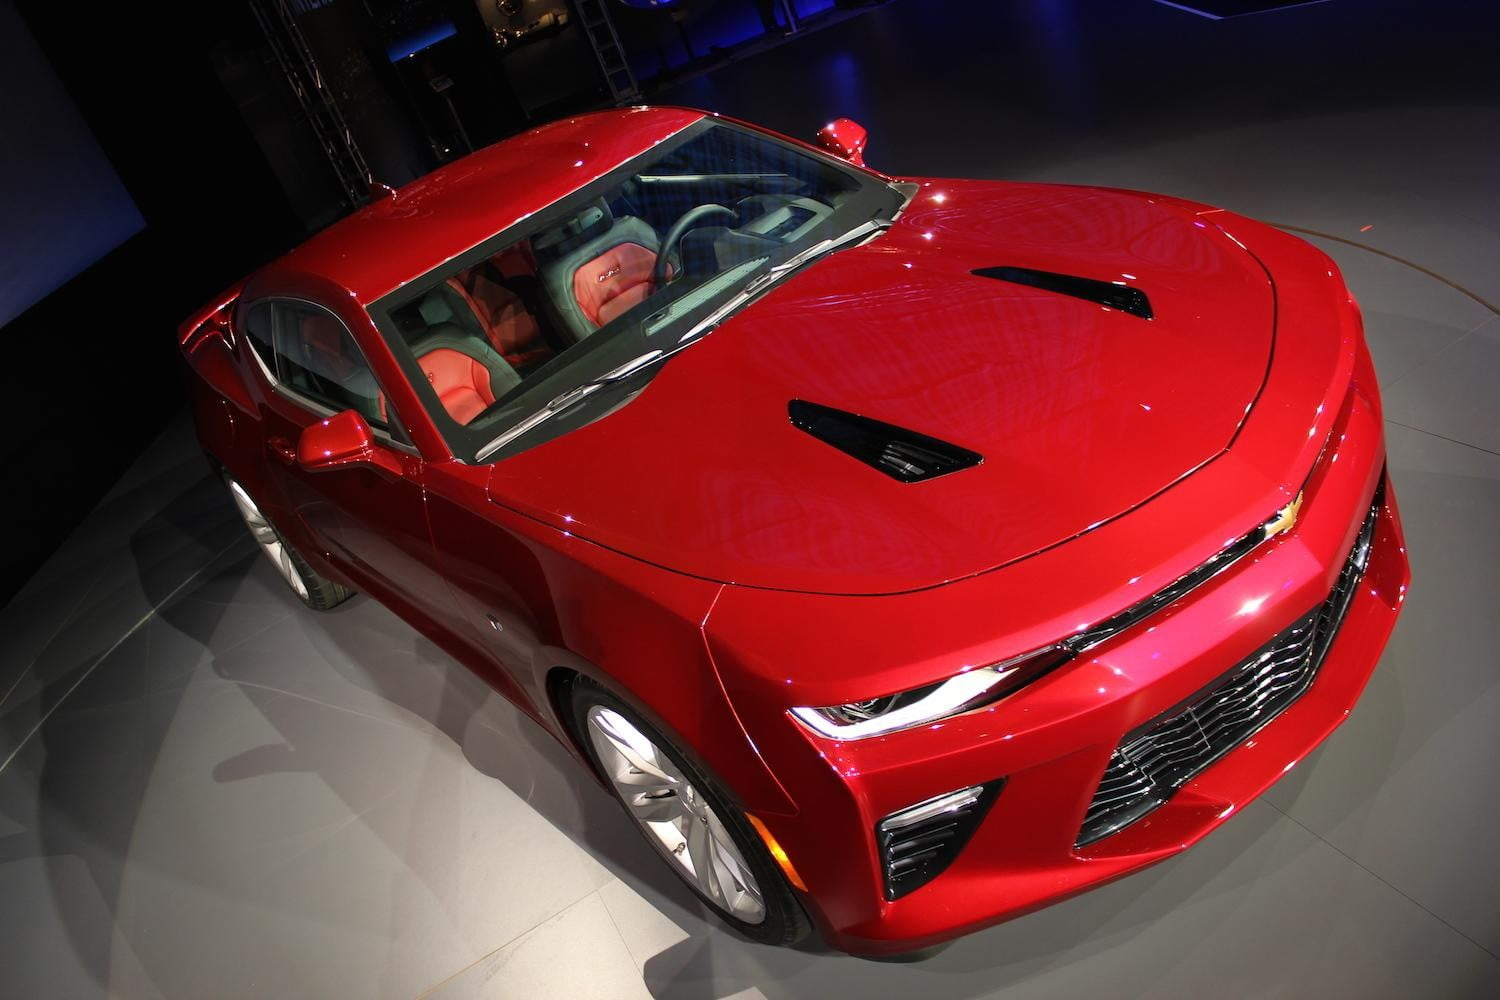 2016 Chevrolet Camaro Impressions Pictures Performance Digital Engine Wiring Diagram On Abit Trends